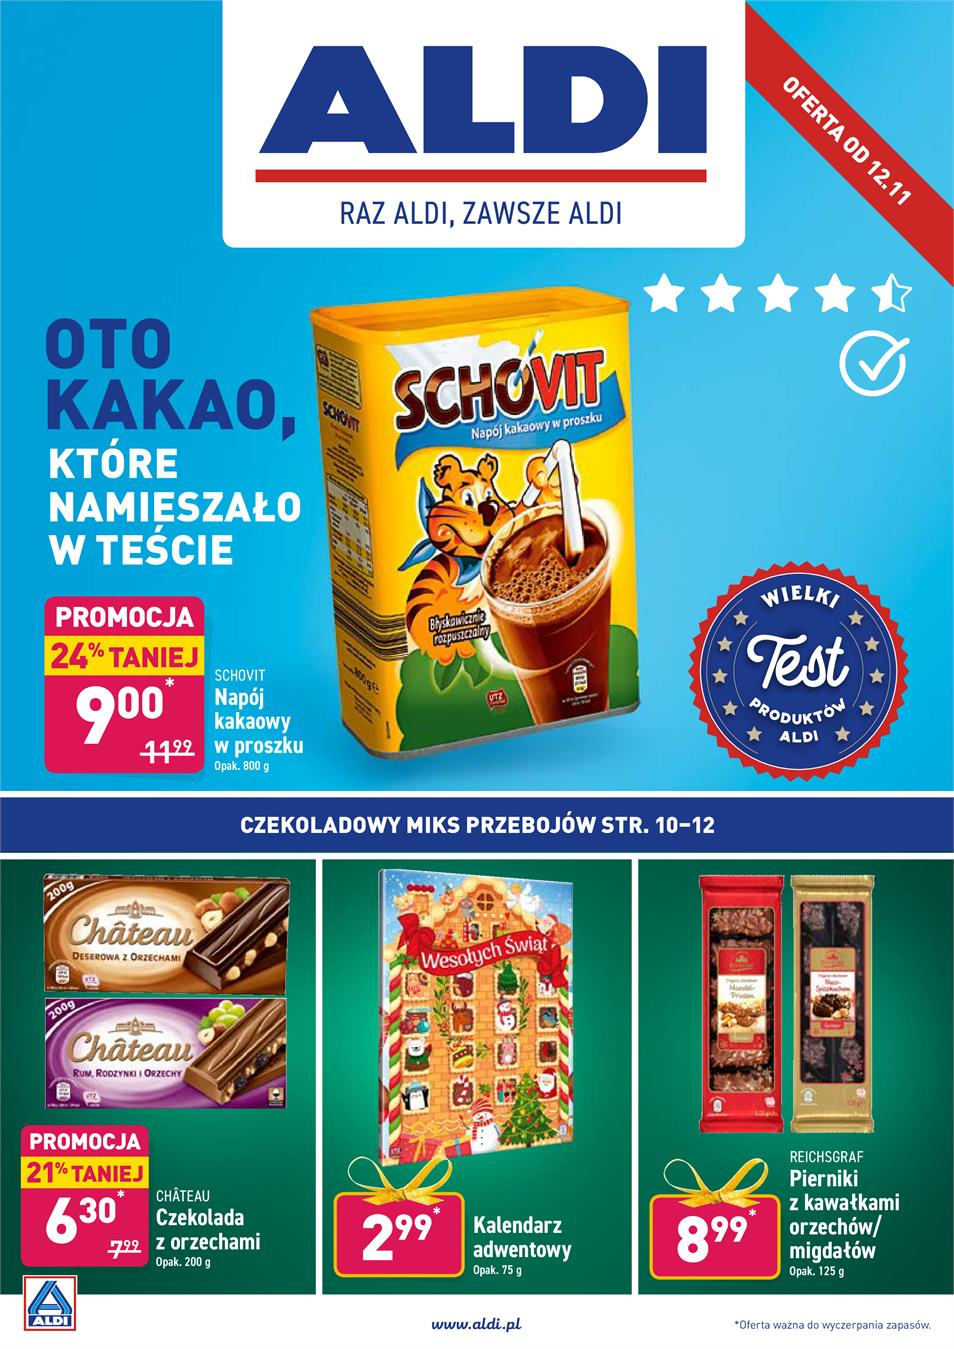 Gazetka ALDI SP Z O O  nr 1 od 2019-11-12 do 2019-11-16